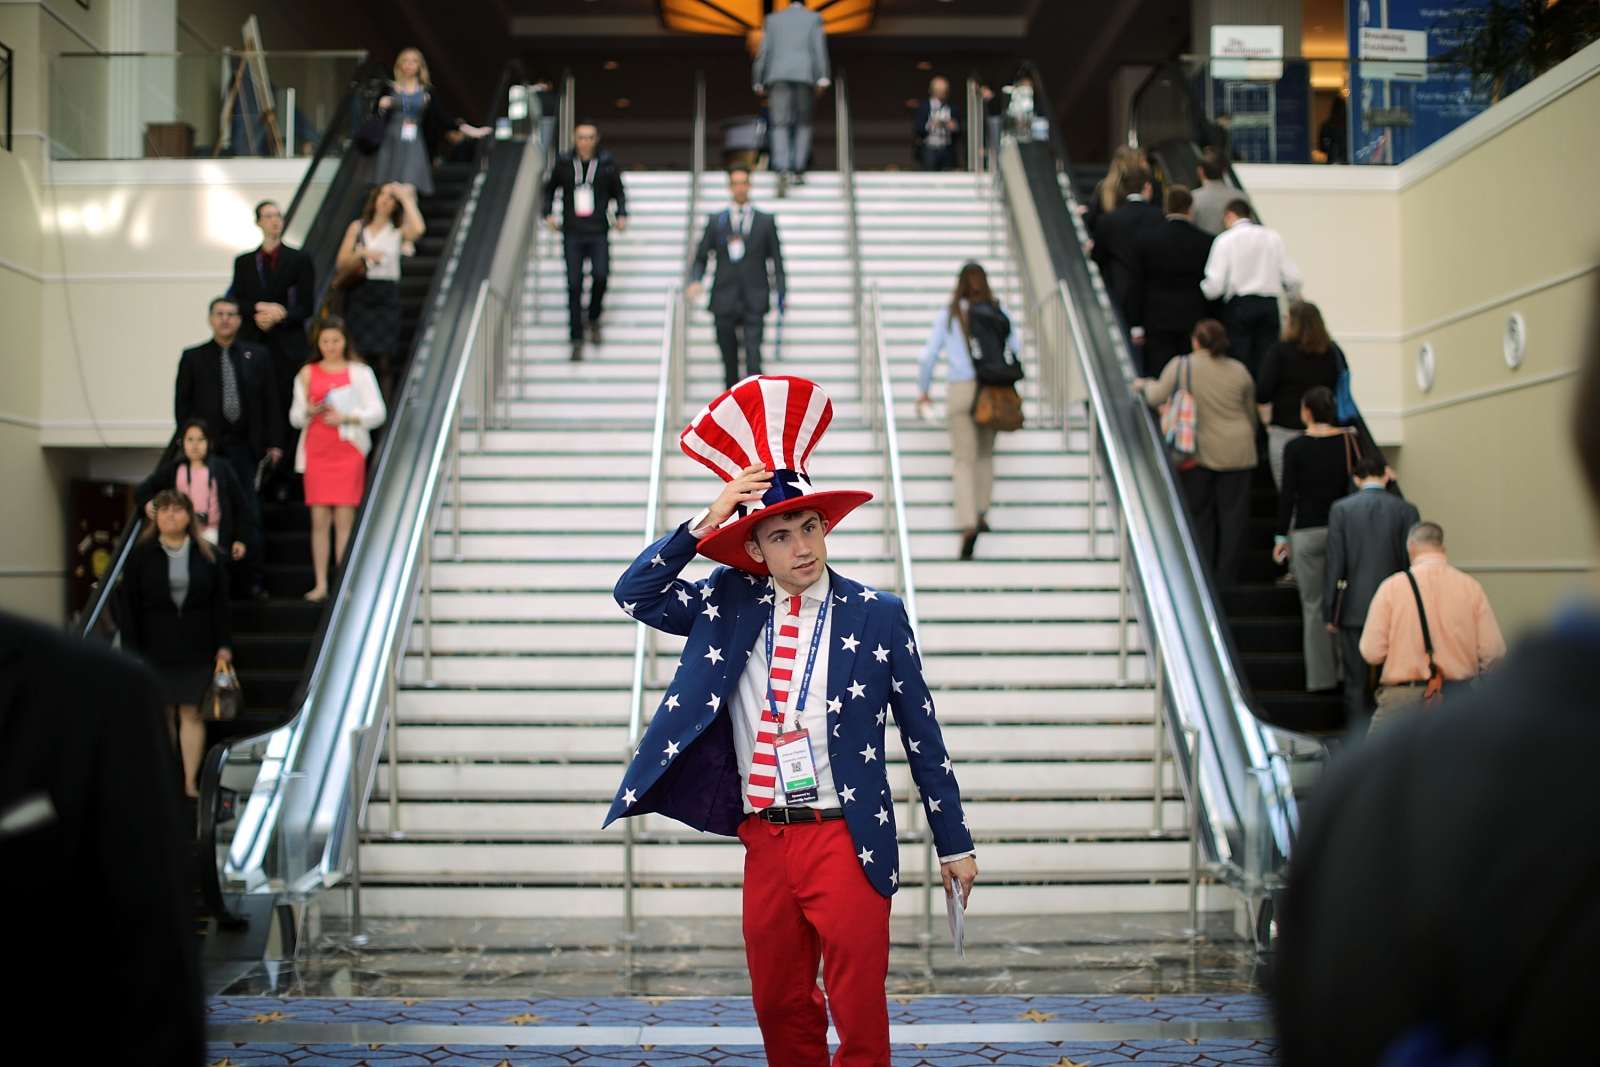 American flag man at CPAC